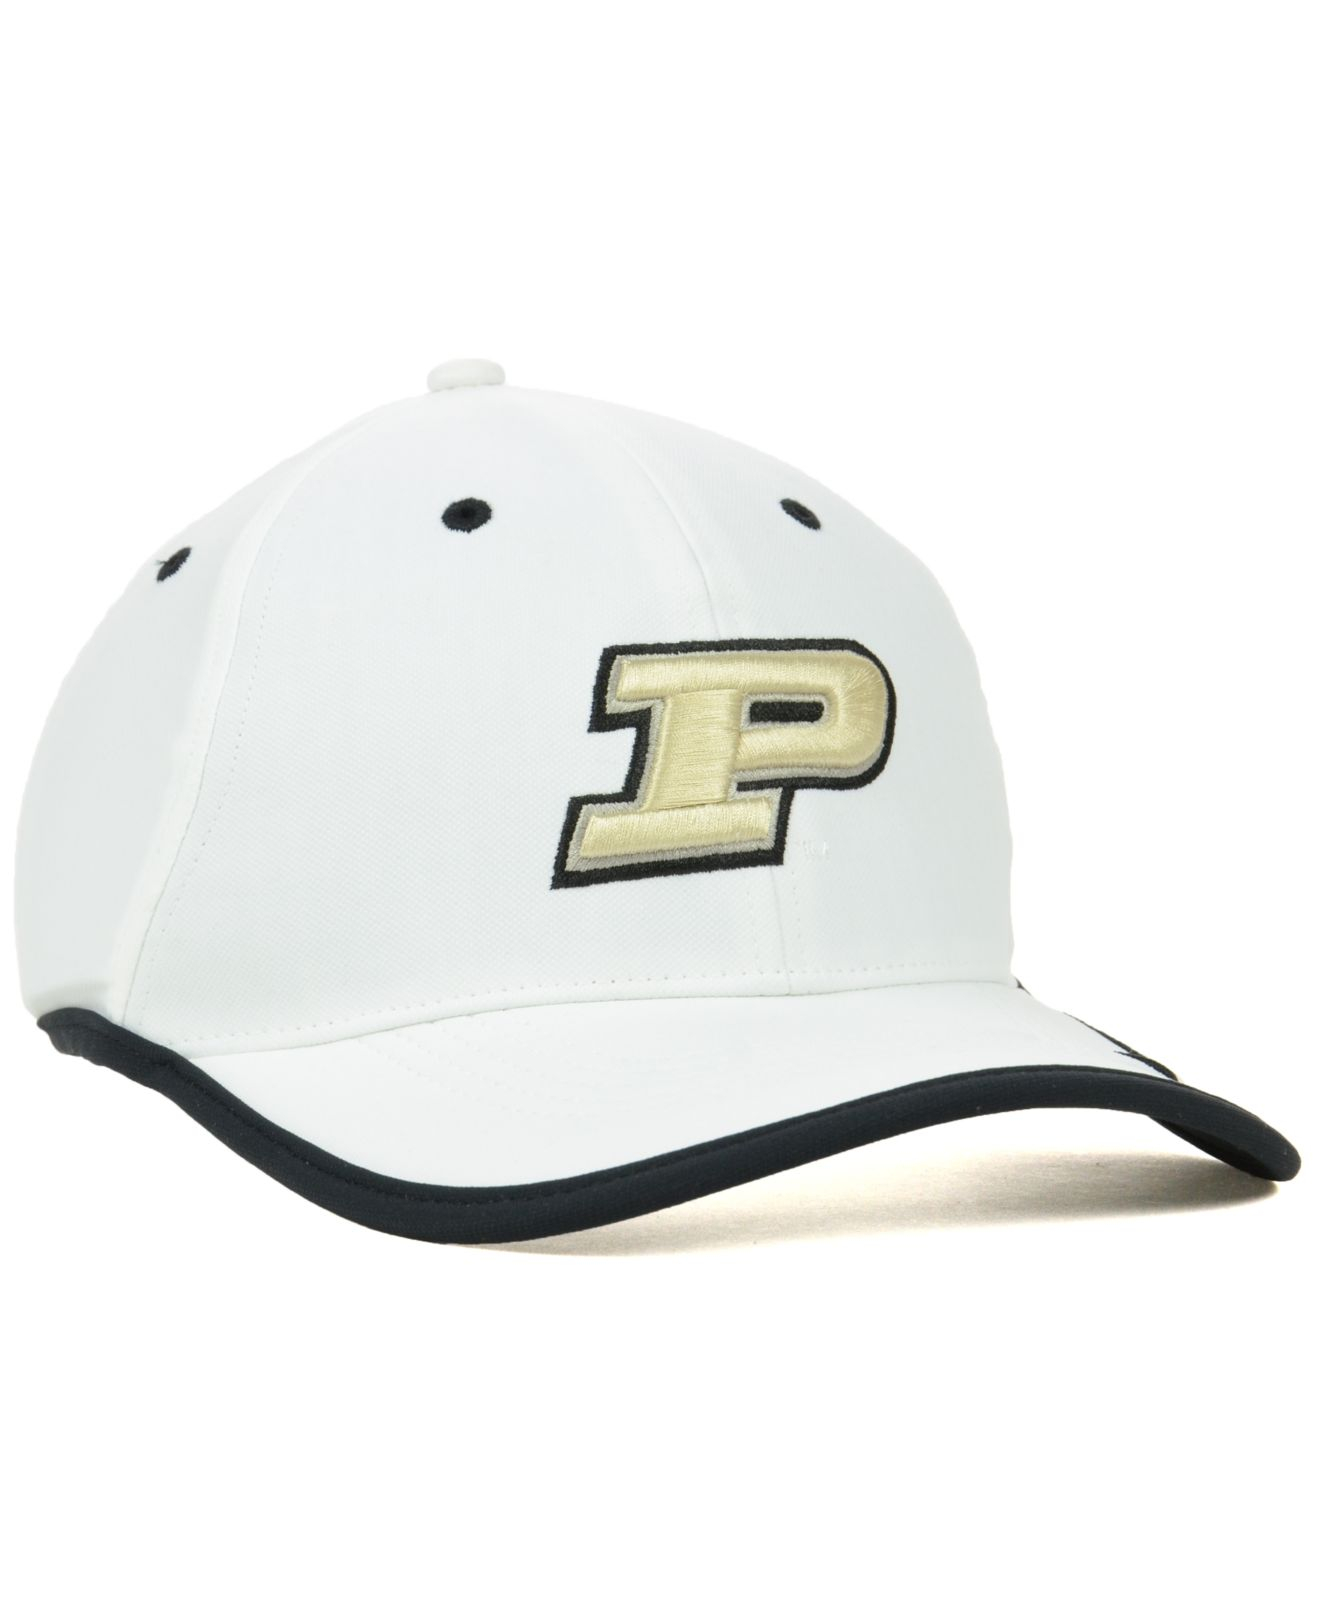 timeless design 2ab85 f605c Nike Purdue Boilermakers Ncaa Coaches Cap in White for Men - Lyst